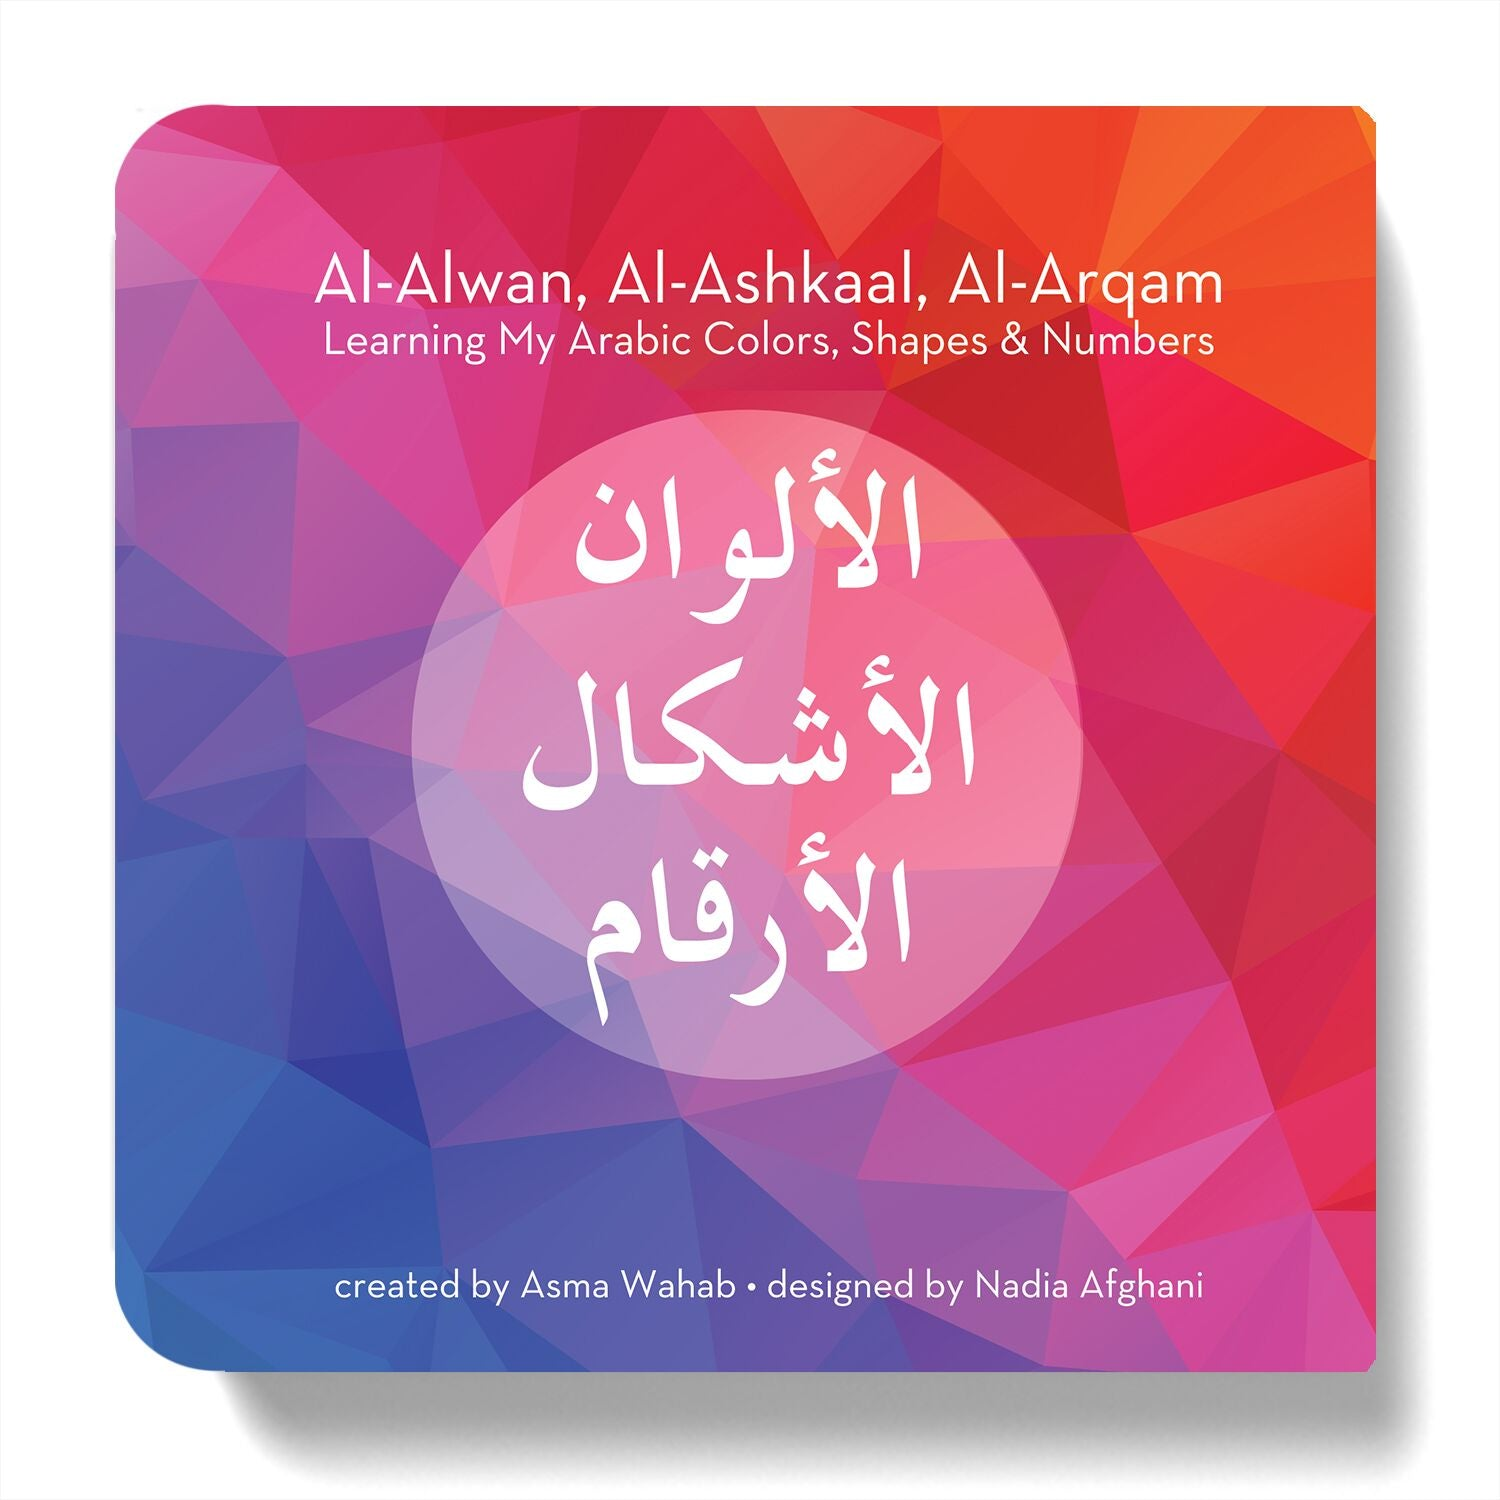 Al-Alwan, Al-Ashkaal, Al Arqam: Learning my Arabic Colors, Shapes & Numbers